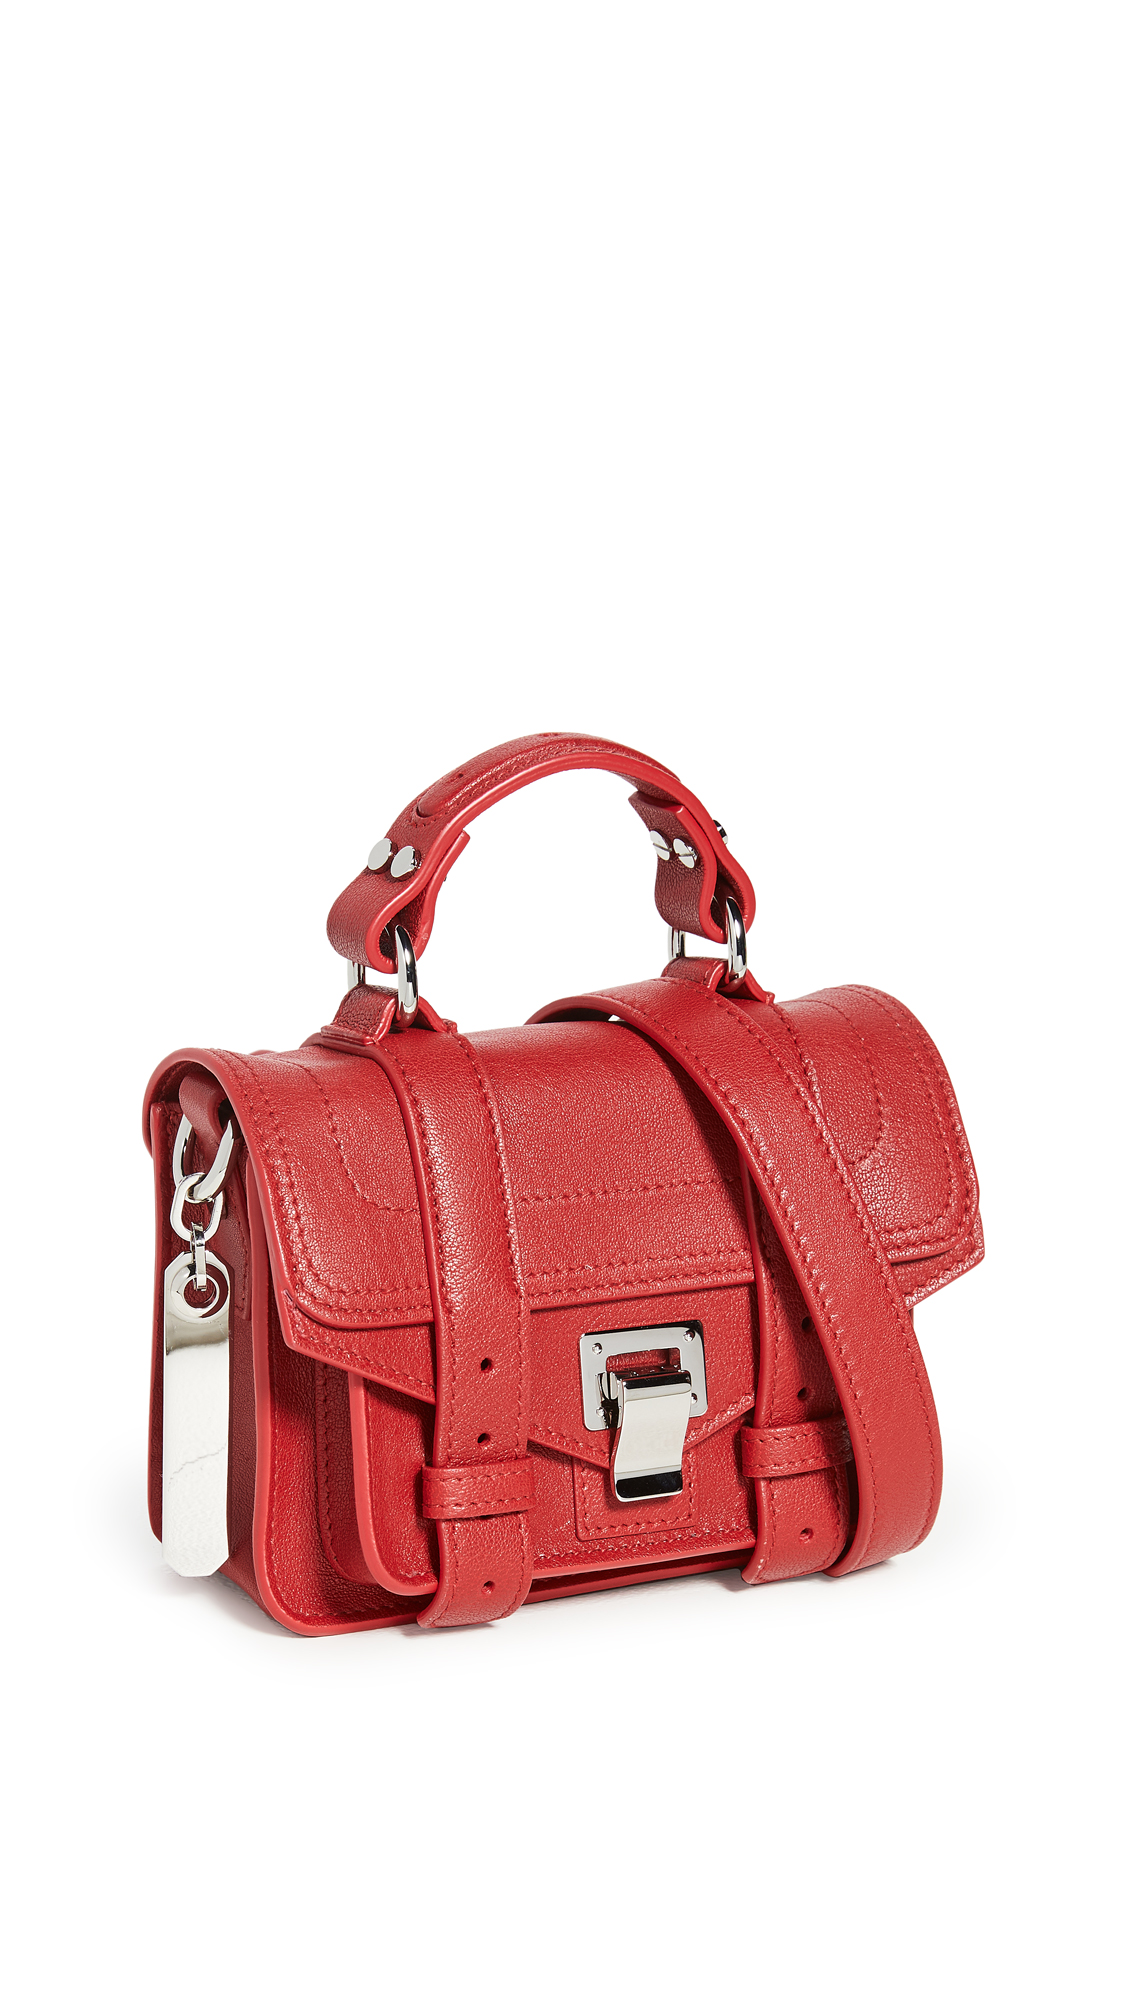 Proenza Schouler PS1 MICRO BAG